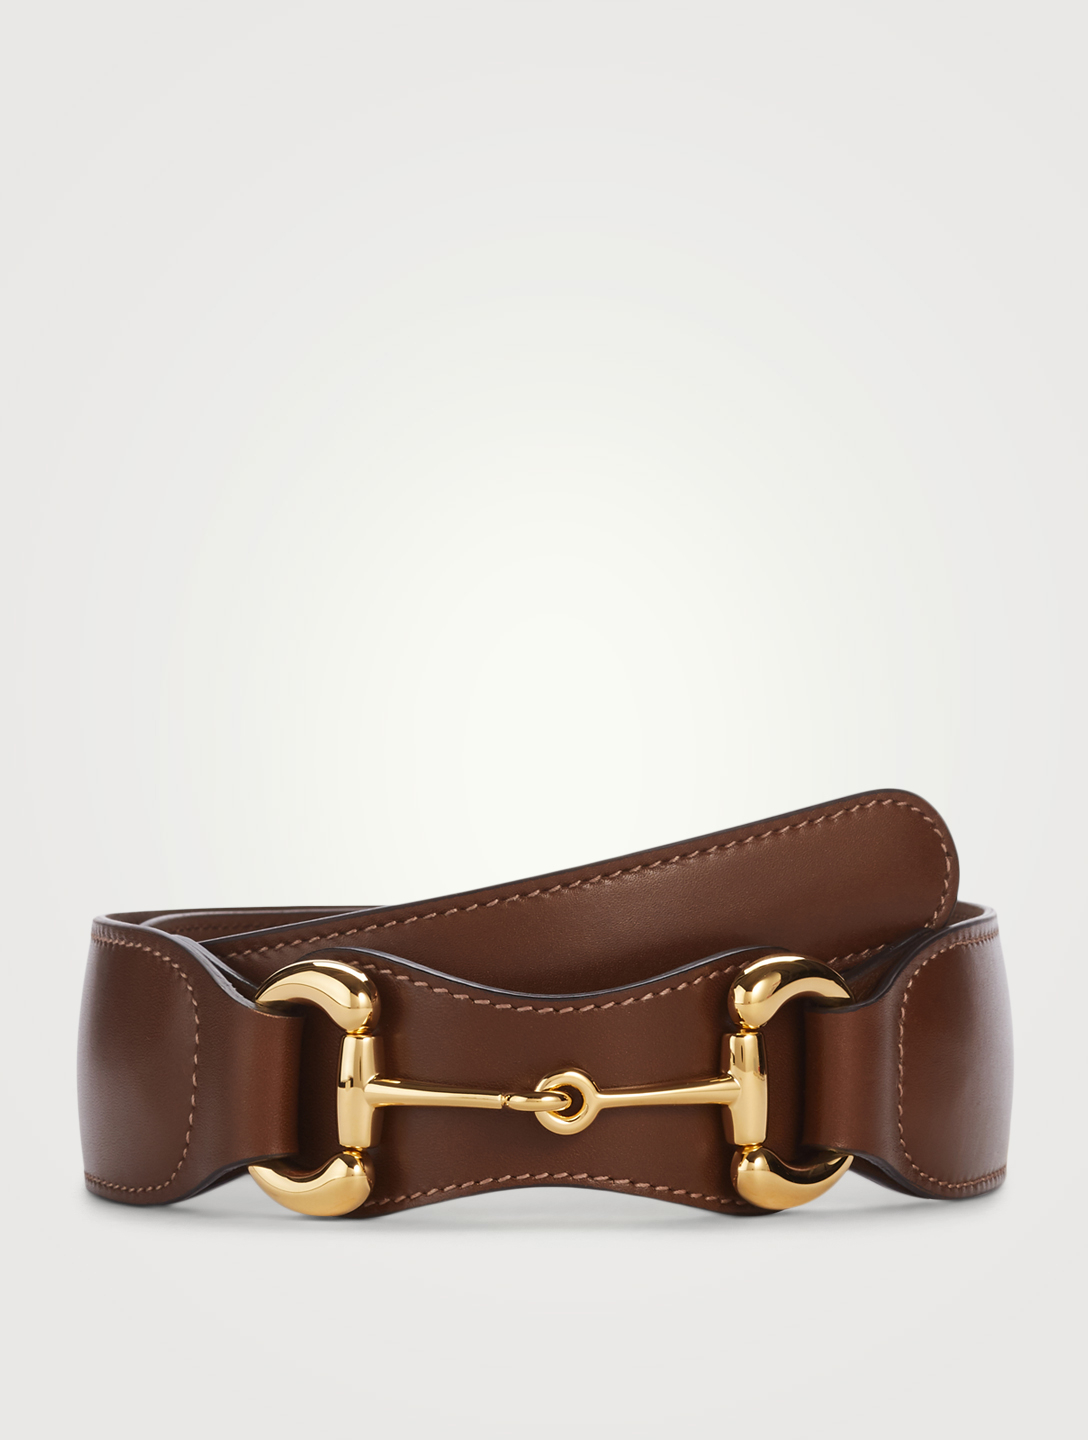 GUCCI Leather Belt With Horsebit Buckle Women's Brown